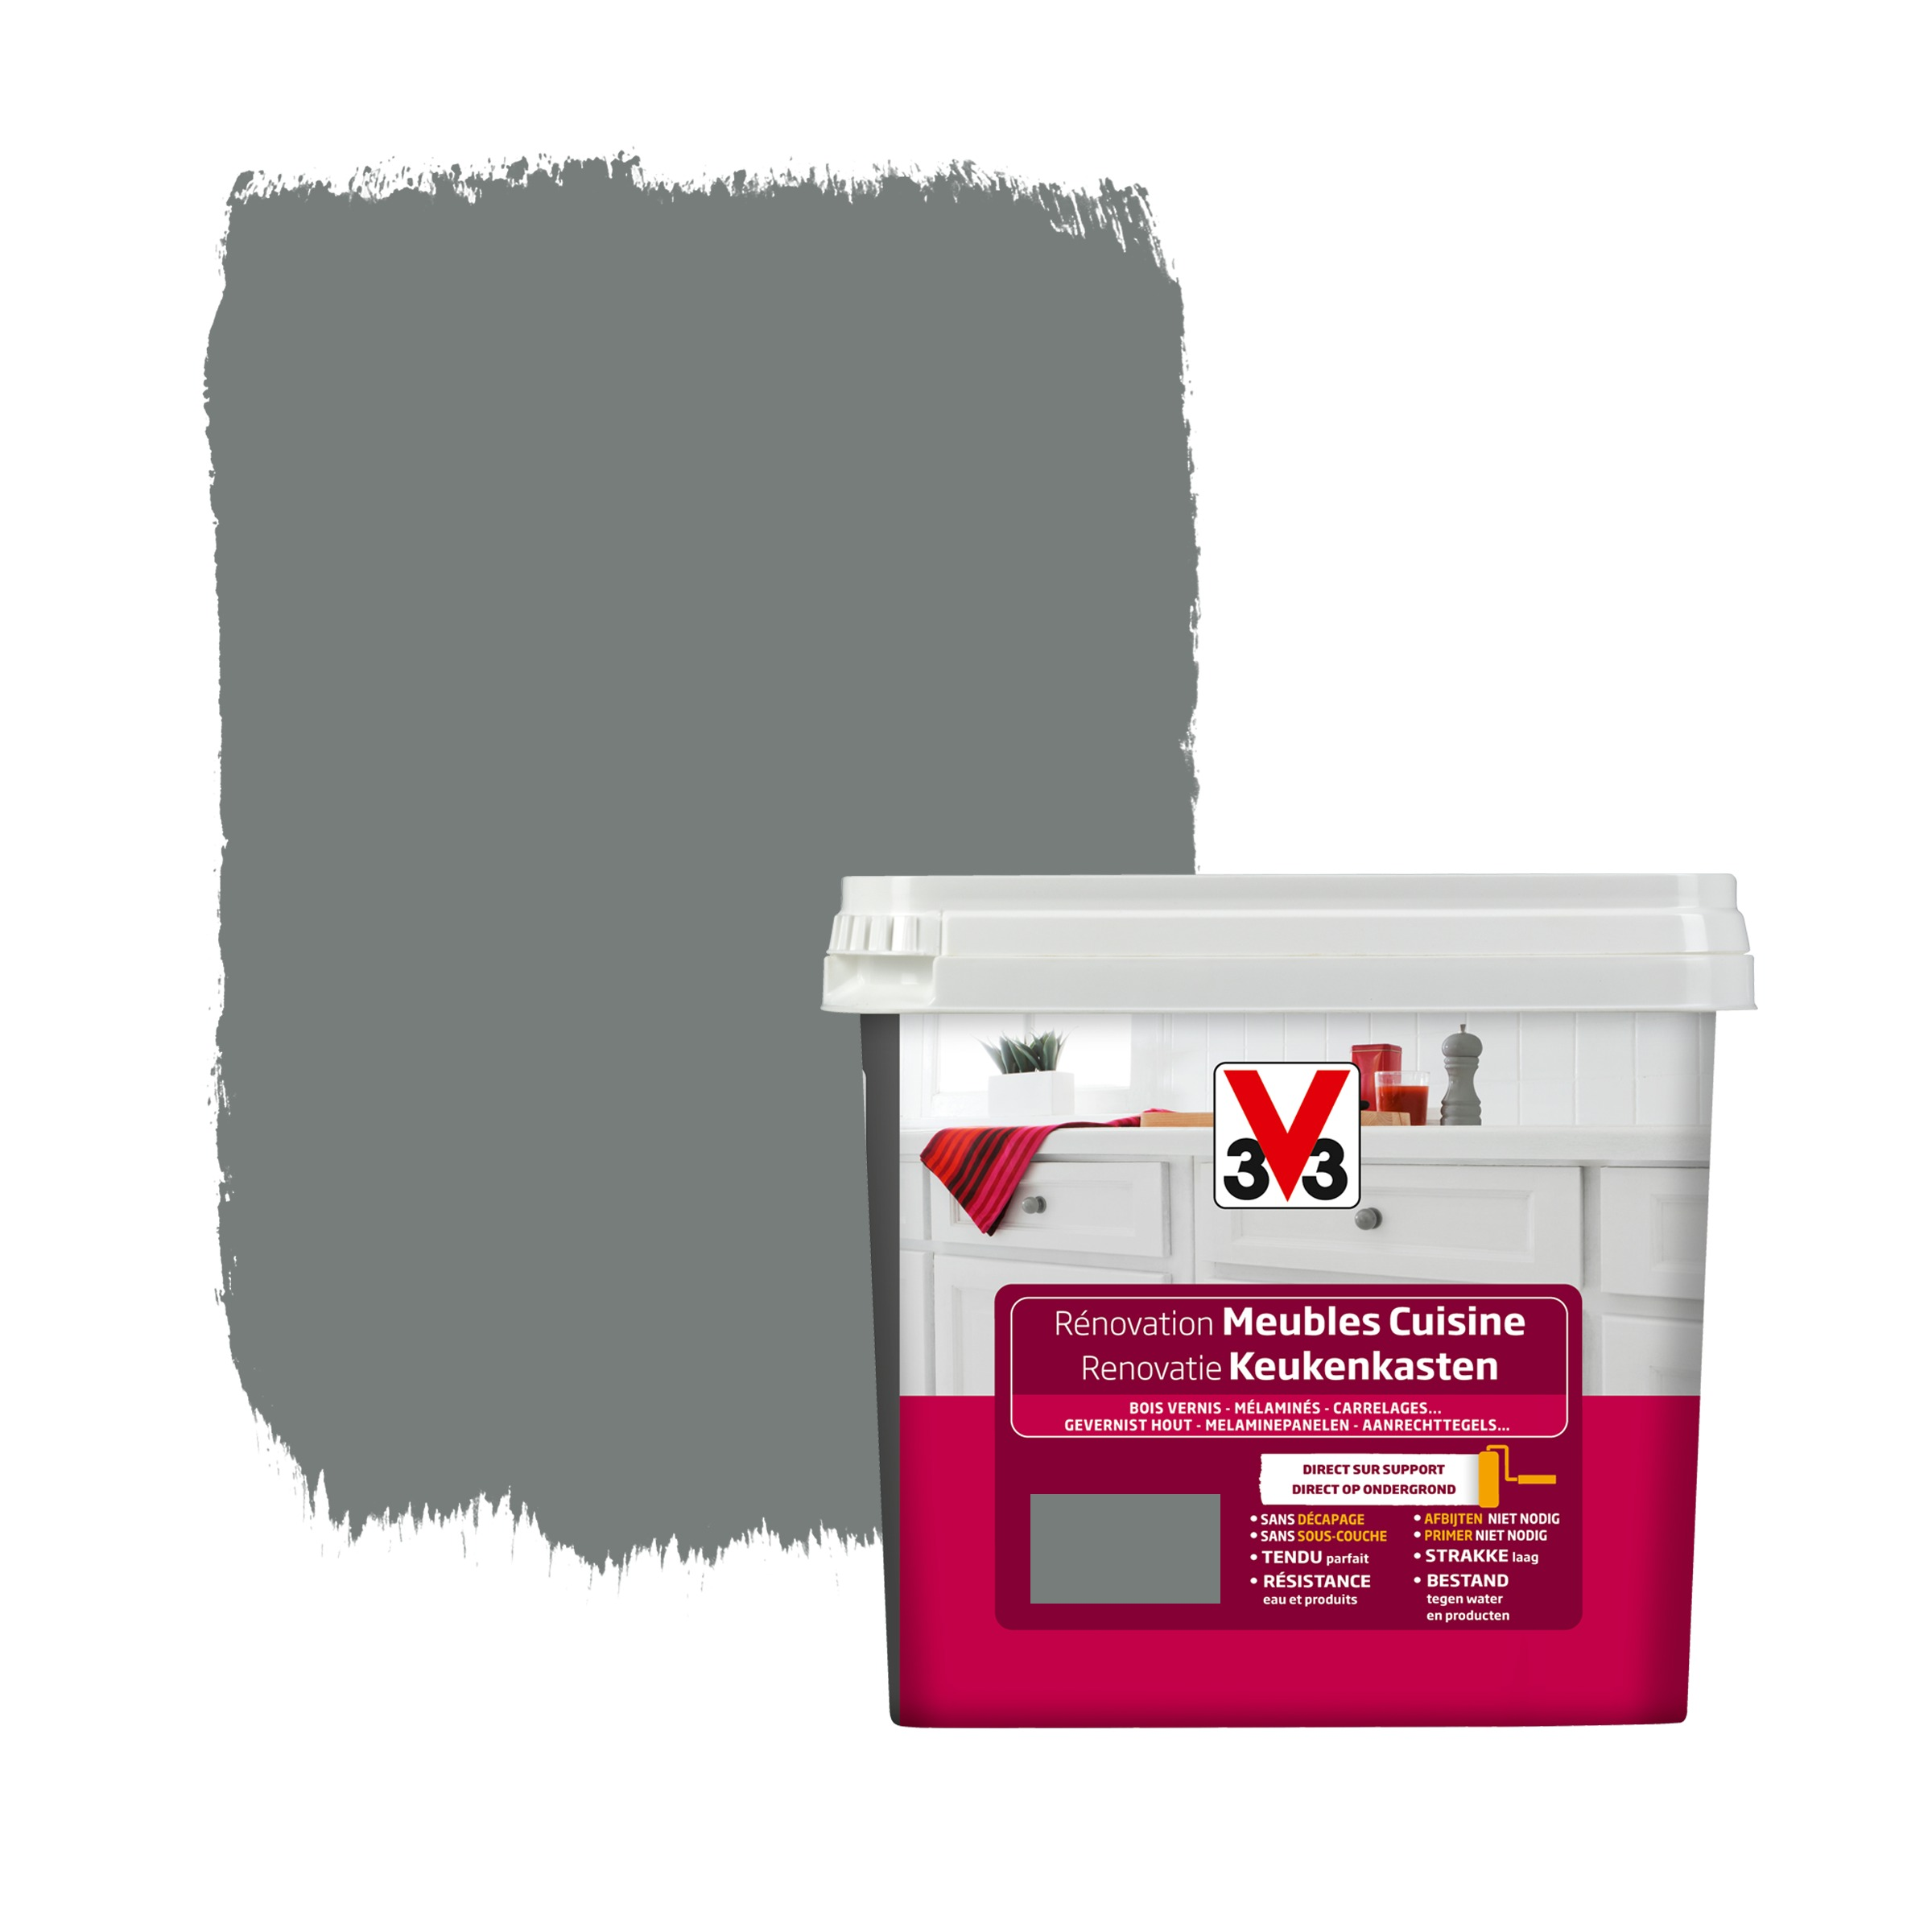 Peinture de r novation meubles cuisine v33 satin carbonate for Peinture renovation carrelage v33